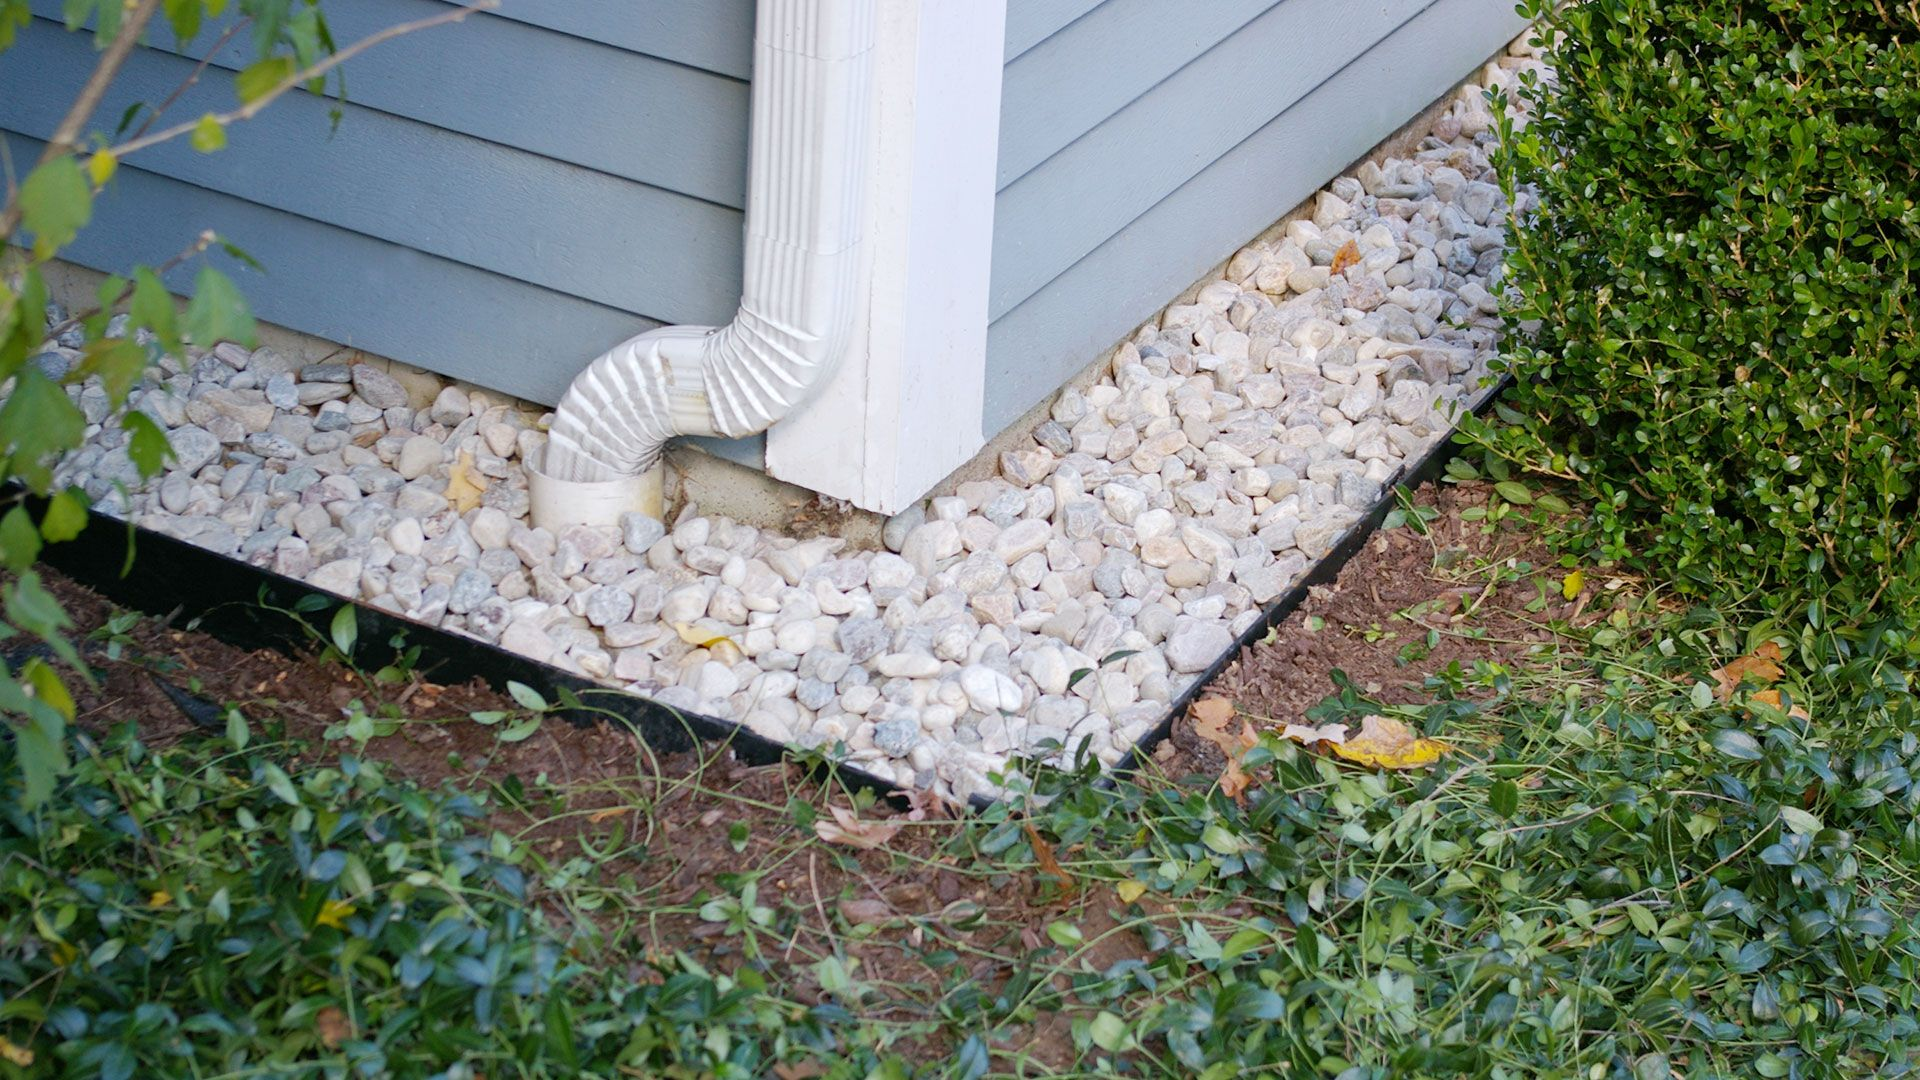 A Drip Edge Is A Trench Filled With Gravel That Prevents